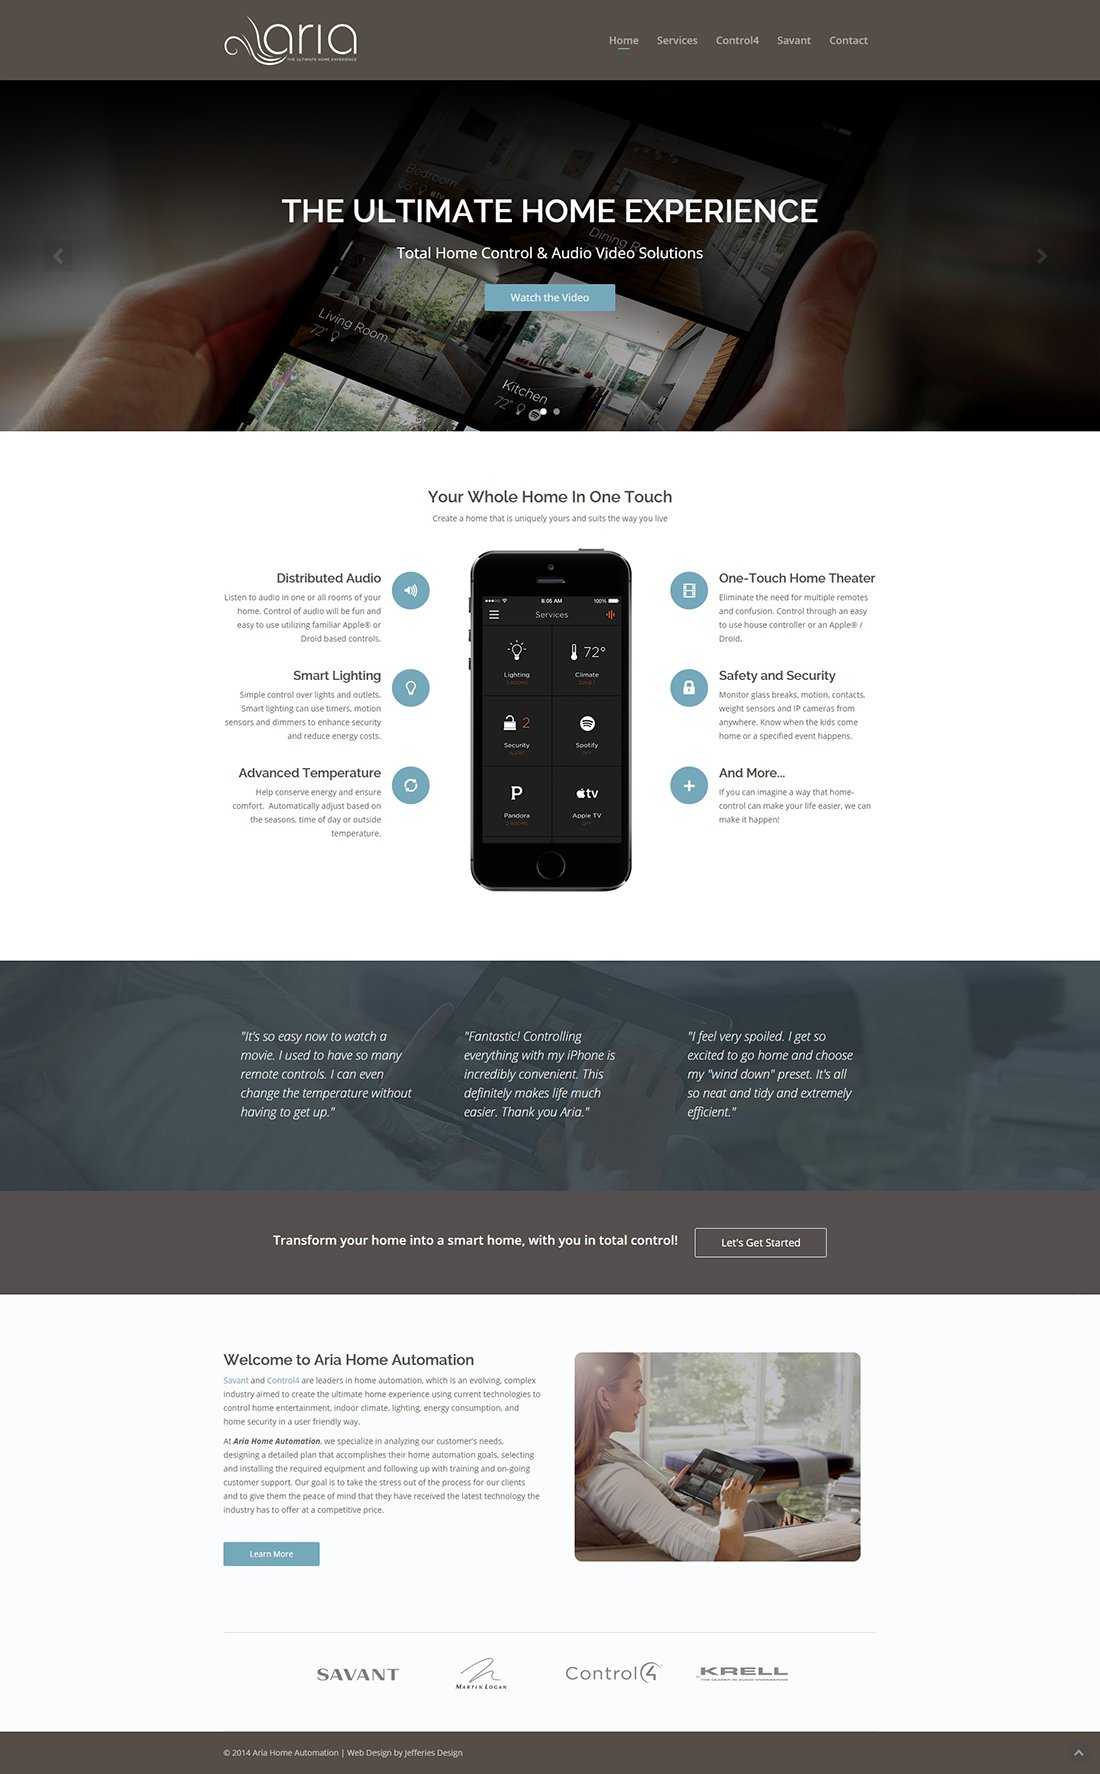 wire-free-naples-florida-webdesign-mobile-friendly